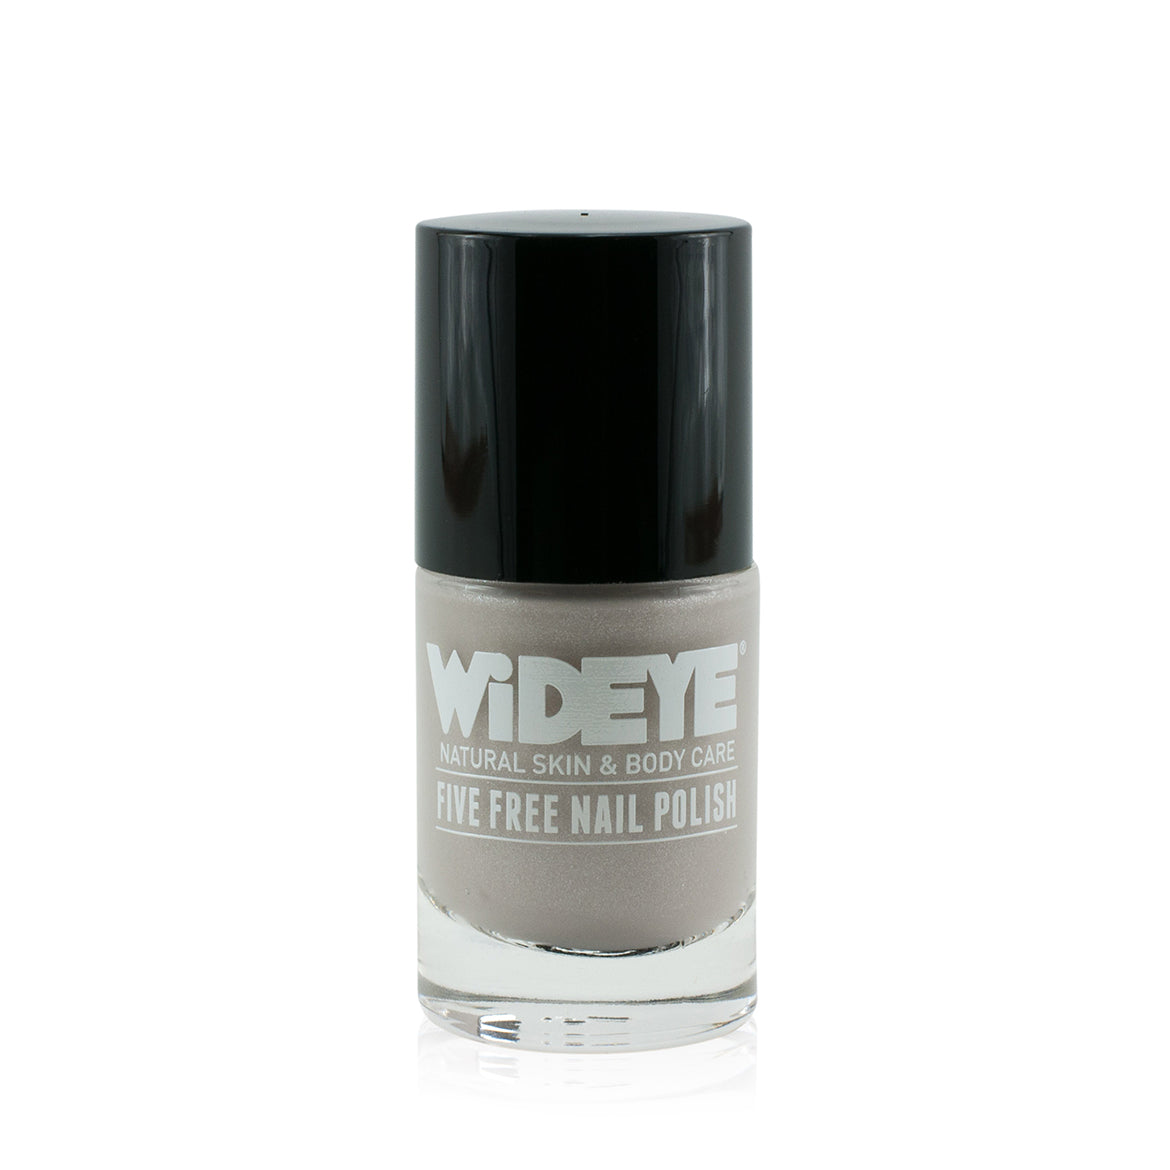 Silver shimmer nail varnish in glass bottle by WiDEYE.